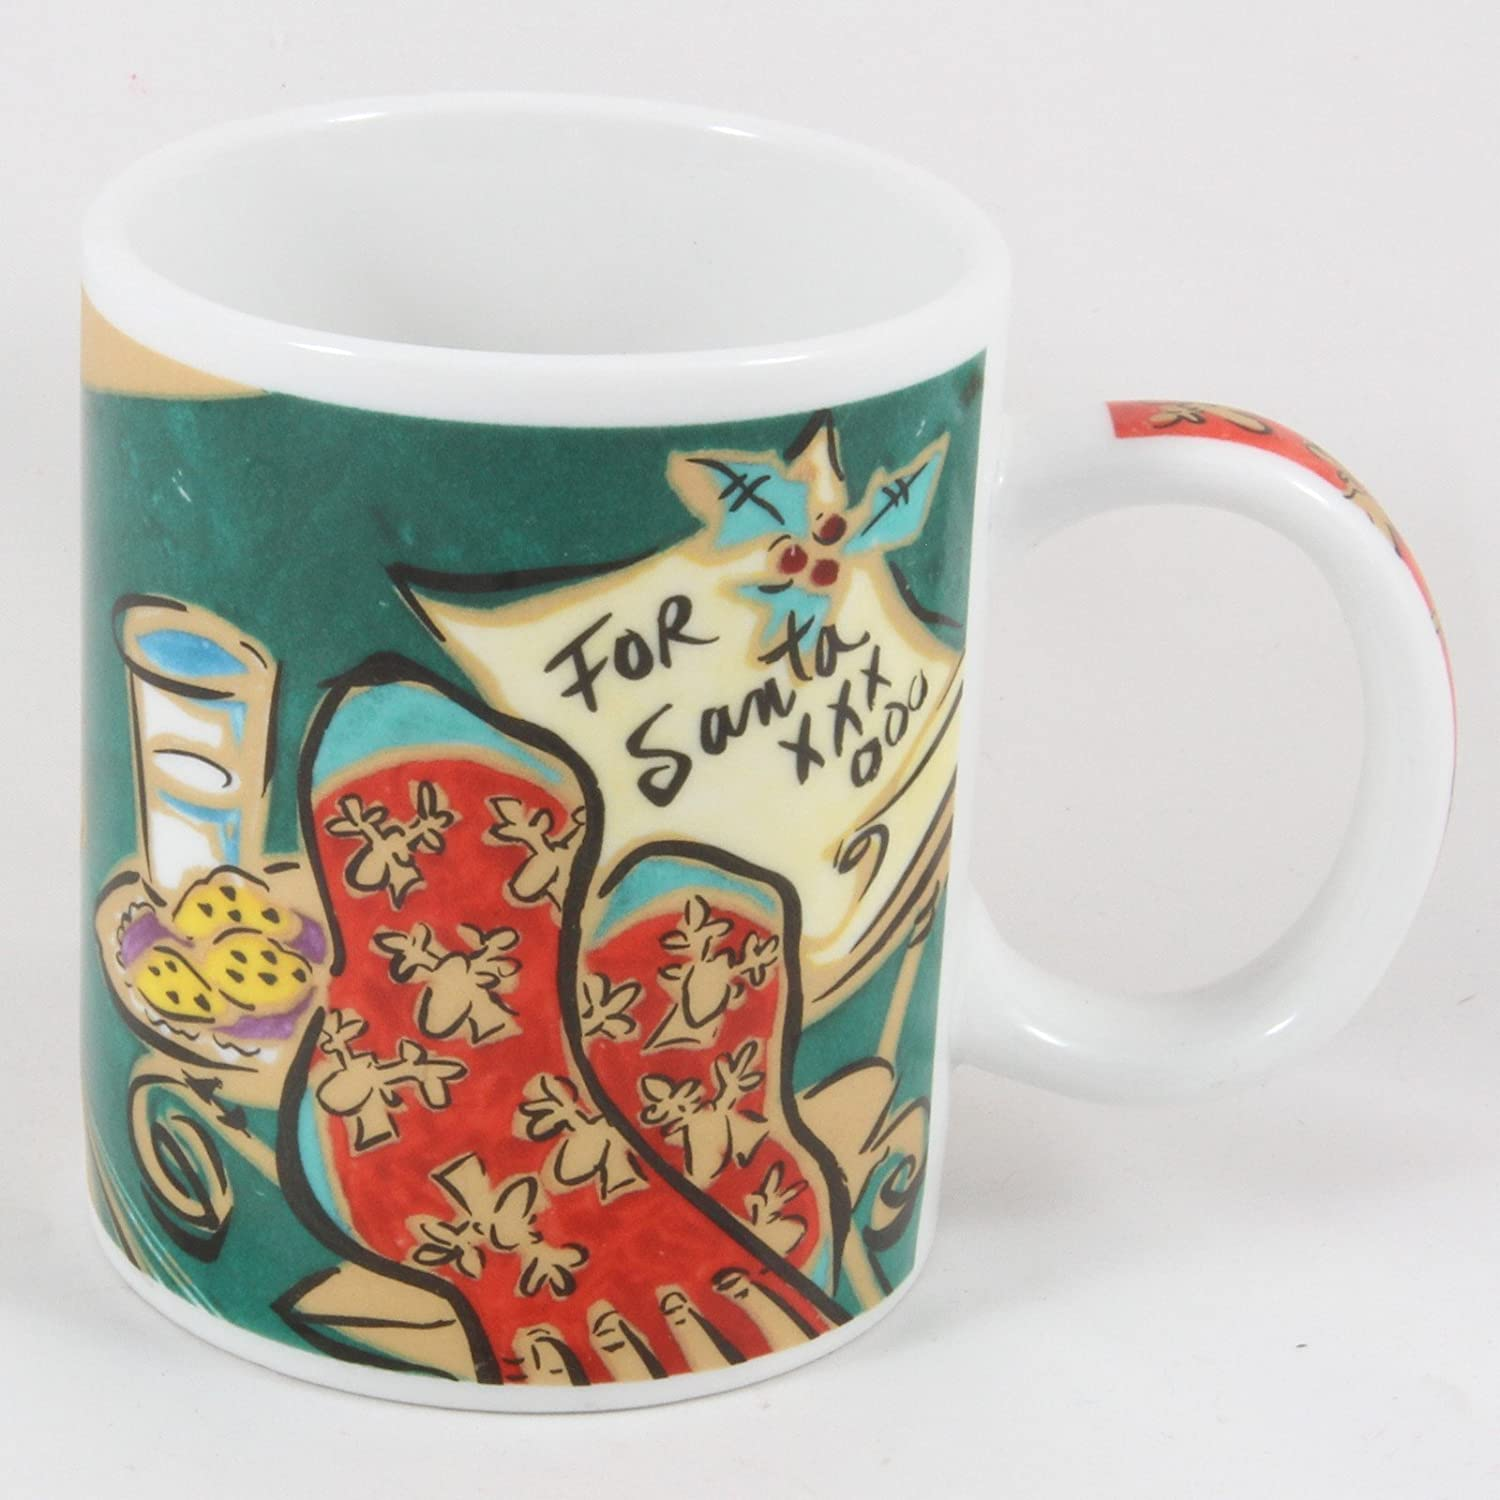 Starbucks Coffee Mary Graves Home for the Holidays Santa Mug 12 Oz.